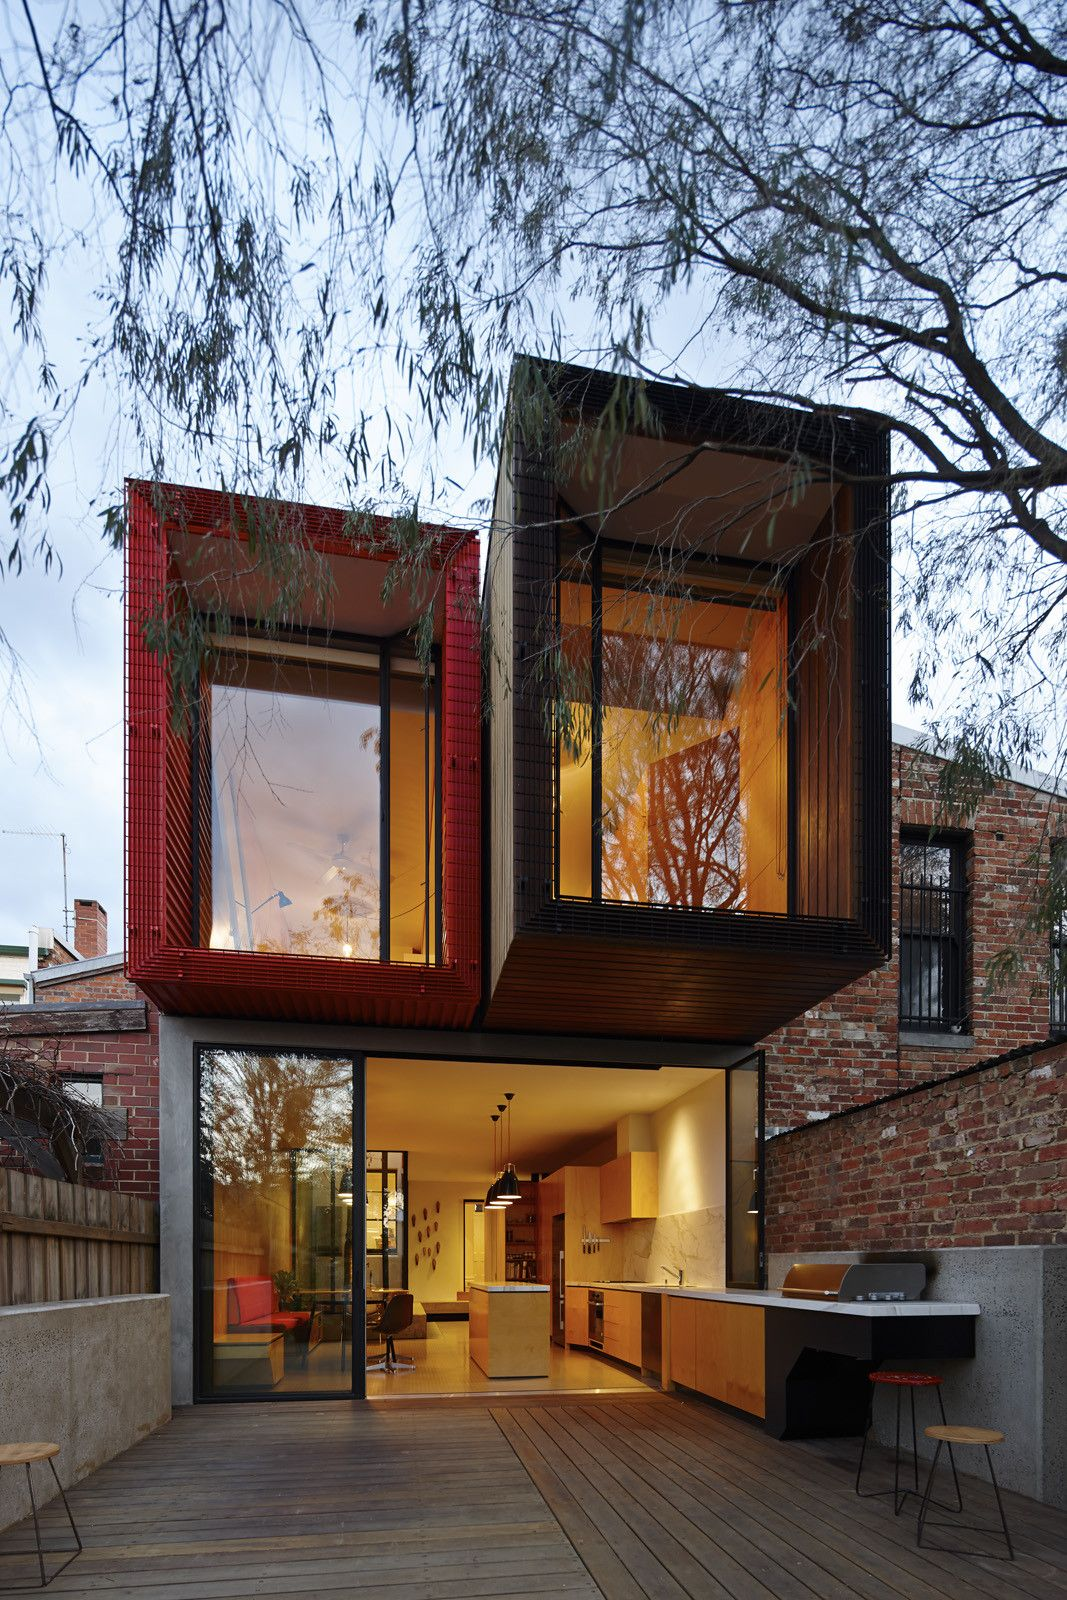 Interior Design For Container Umbau Photo Of Moor Street Residence / Austin Maynard Architects.